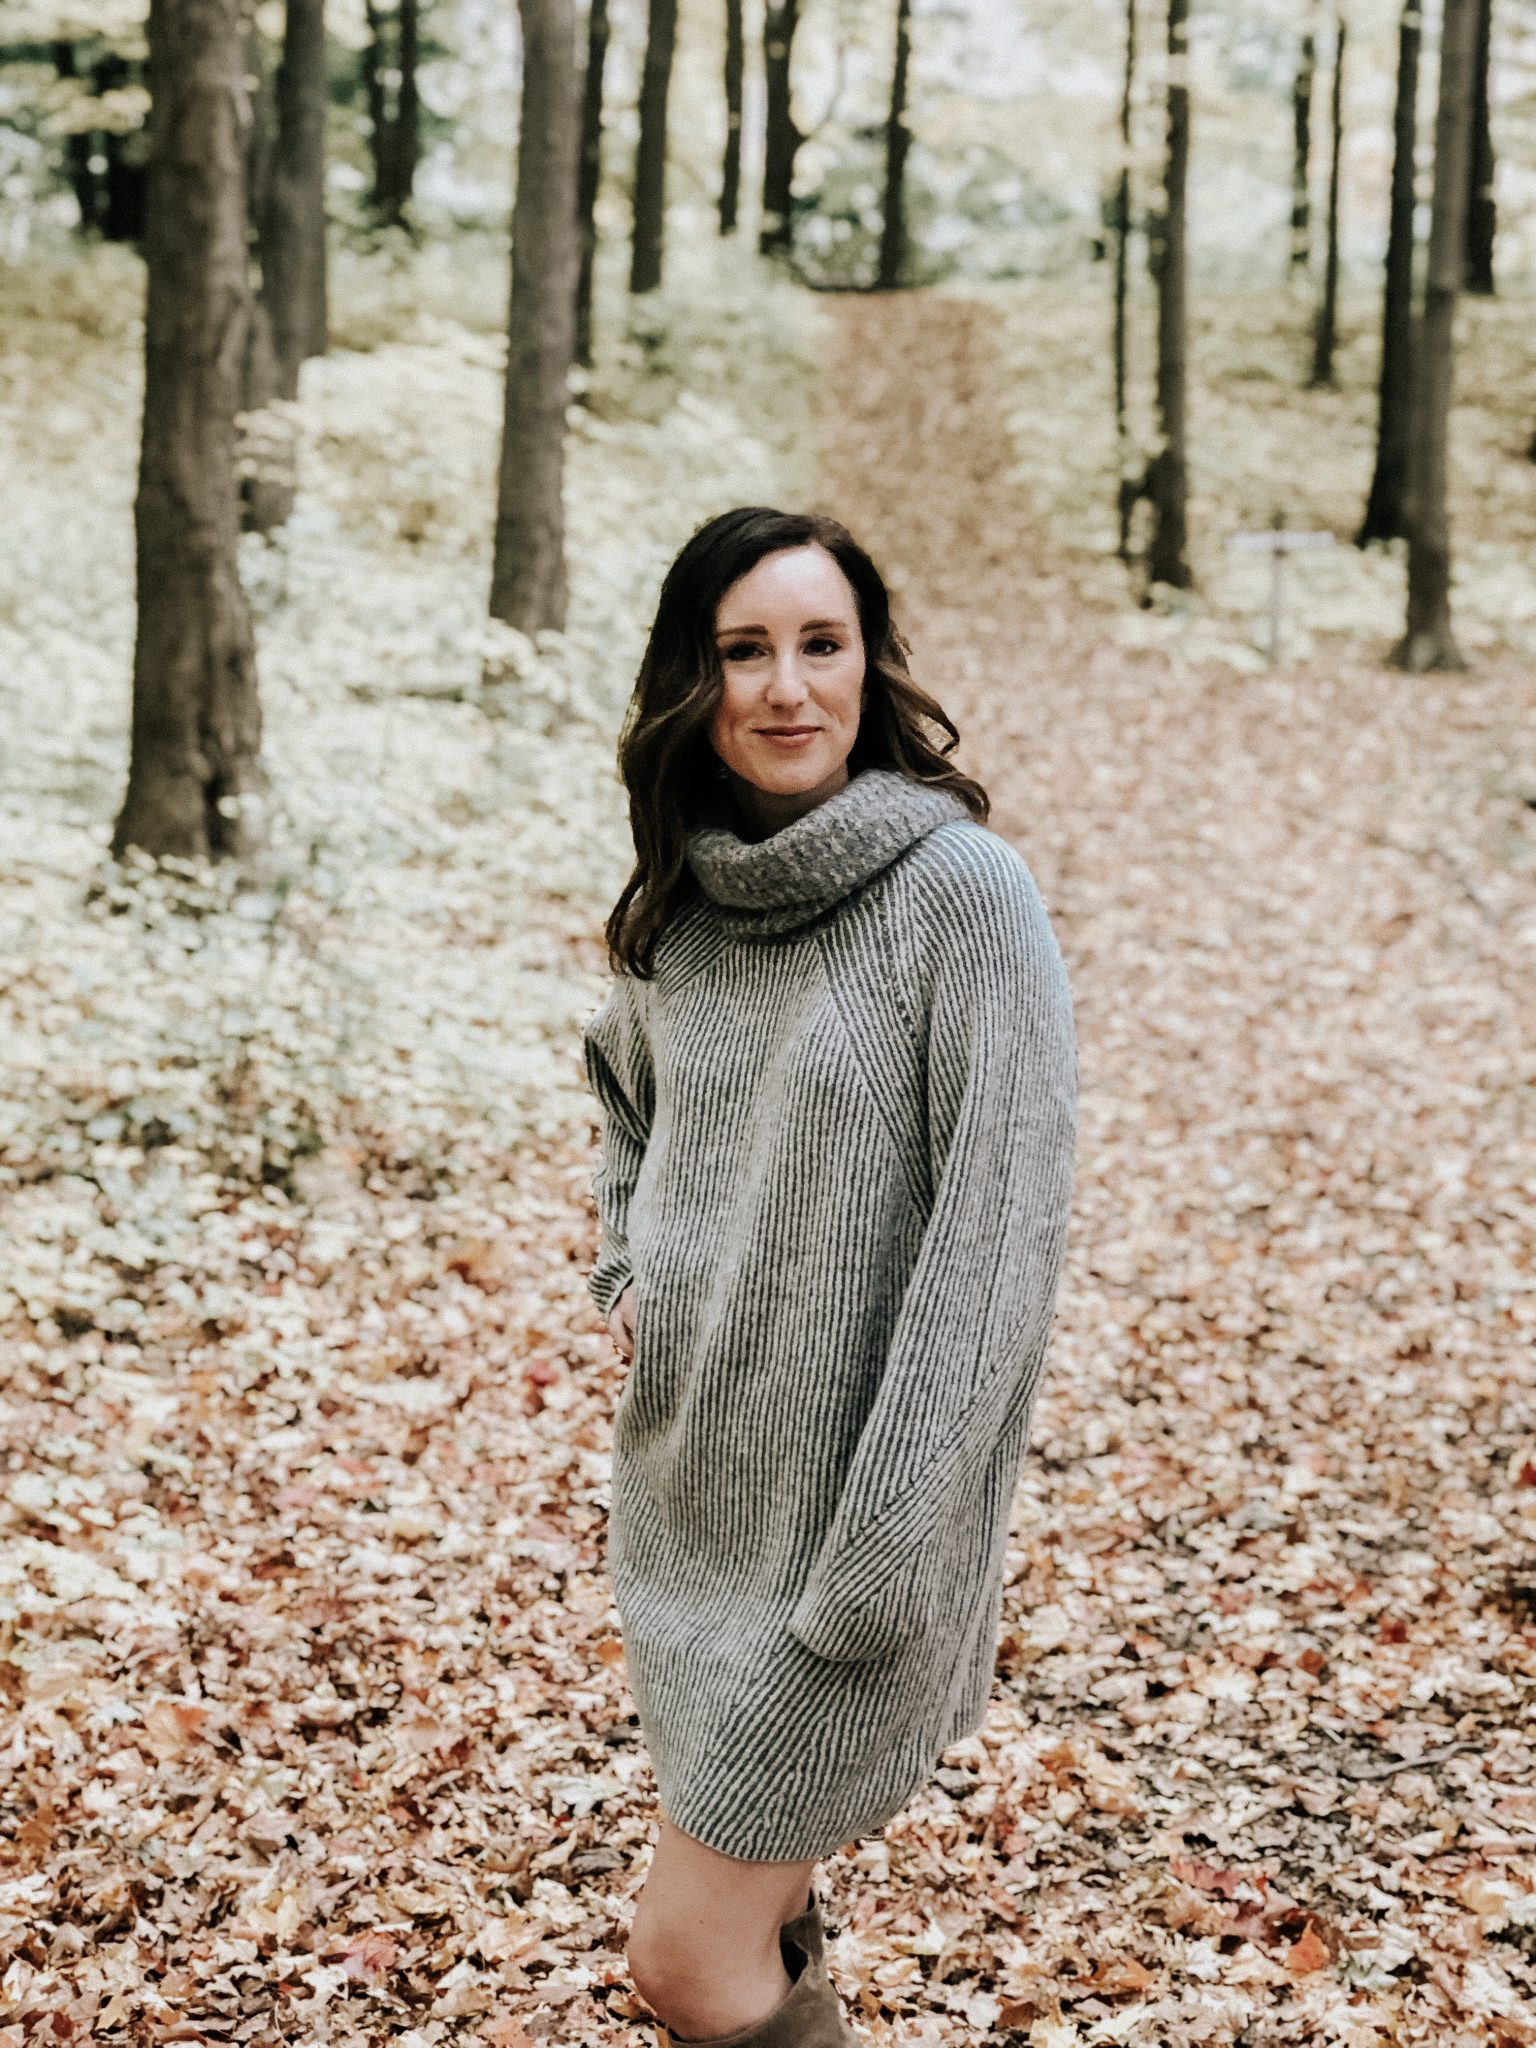 Winter sweater roundup | Daily Splendor Life and Style Blog | sweater dress #wintersweaters #fallsweater #turtlenecksweater #cozysweaters #topshop #nordstrom #darkhair #winterfashion #womensclothes #holidayoutfit #cozyclothes